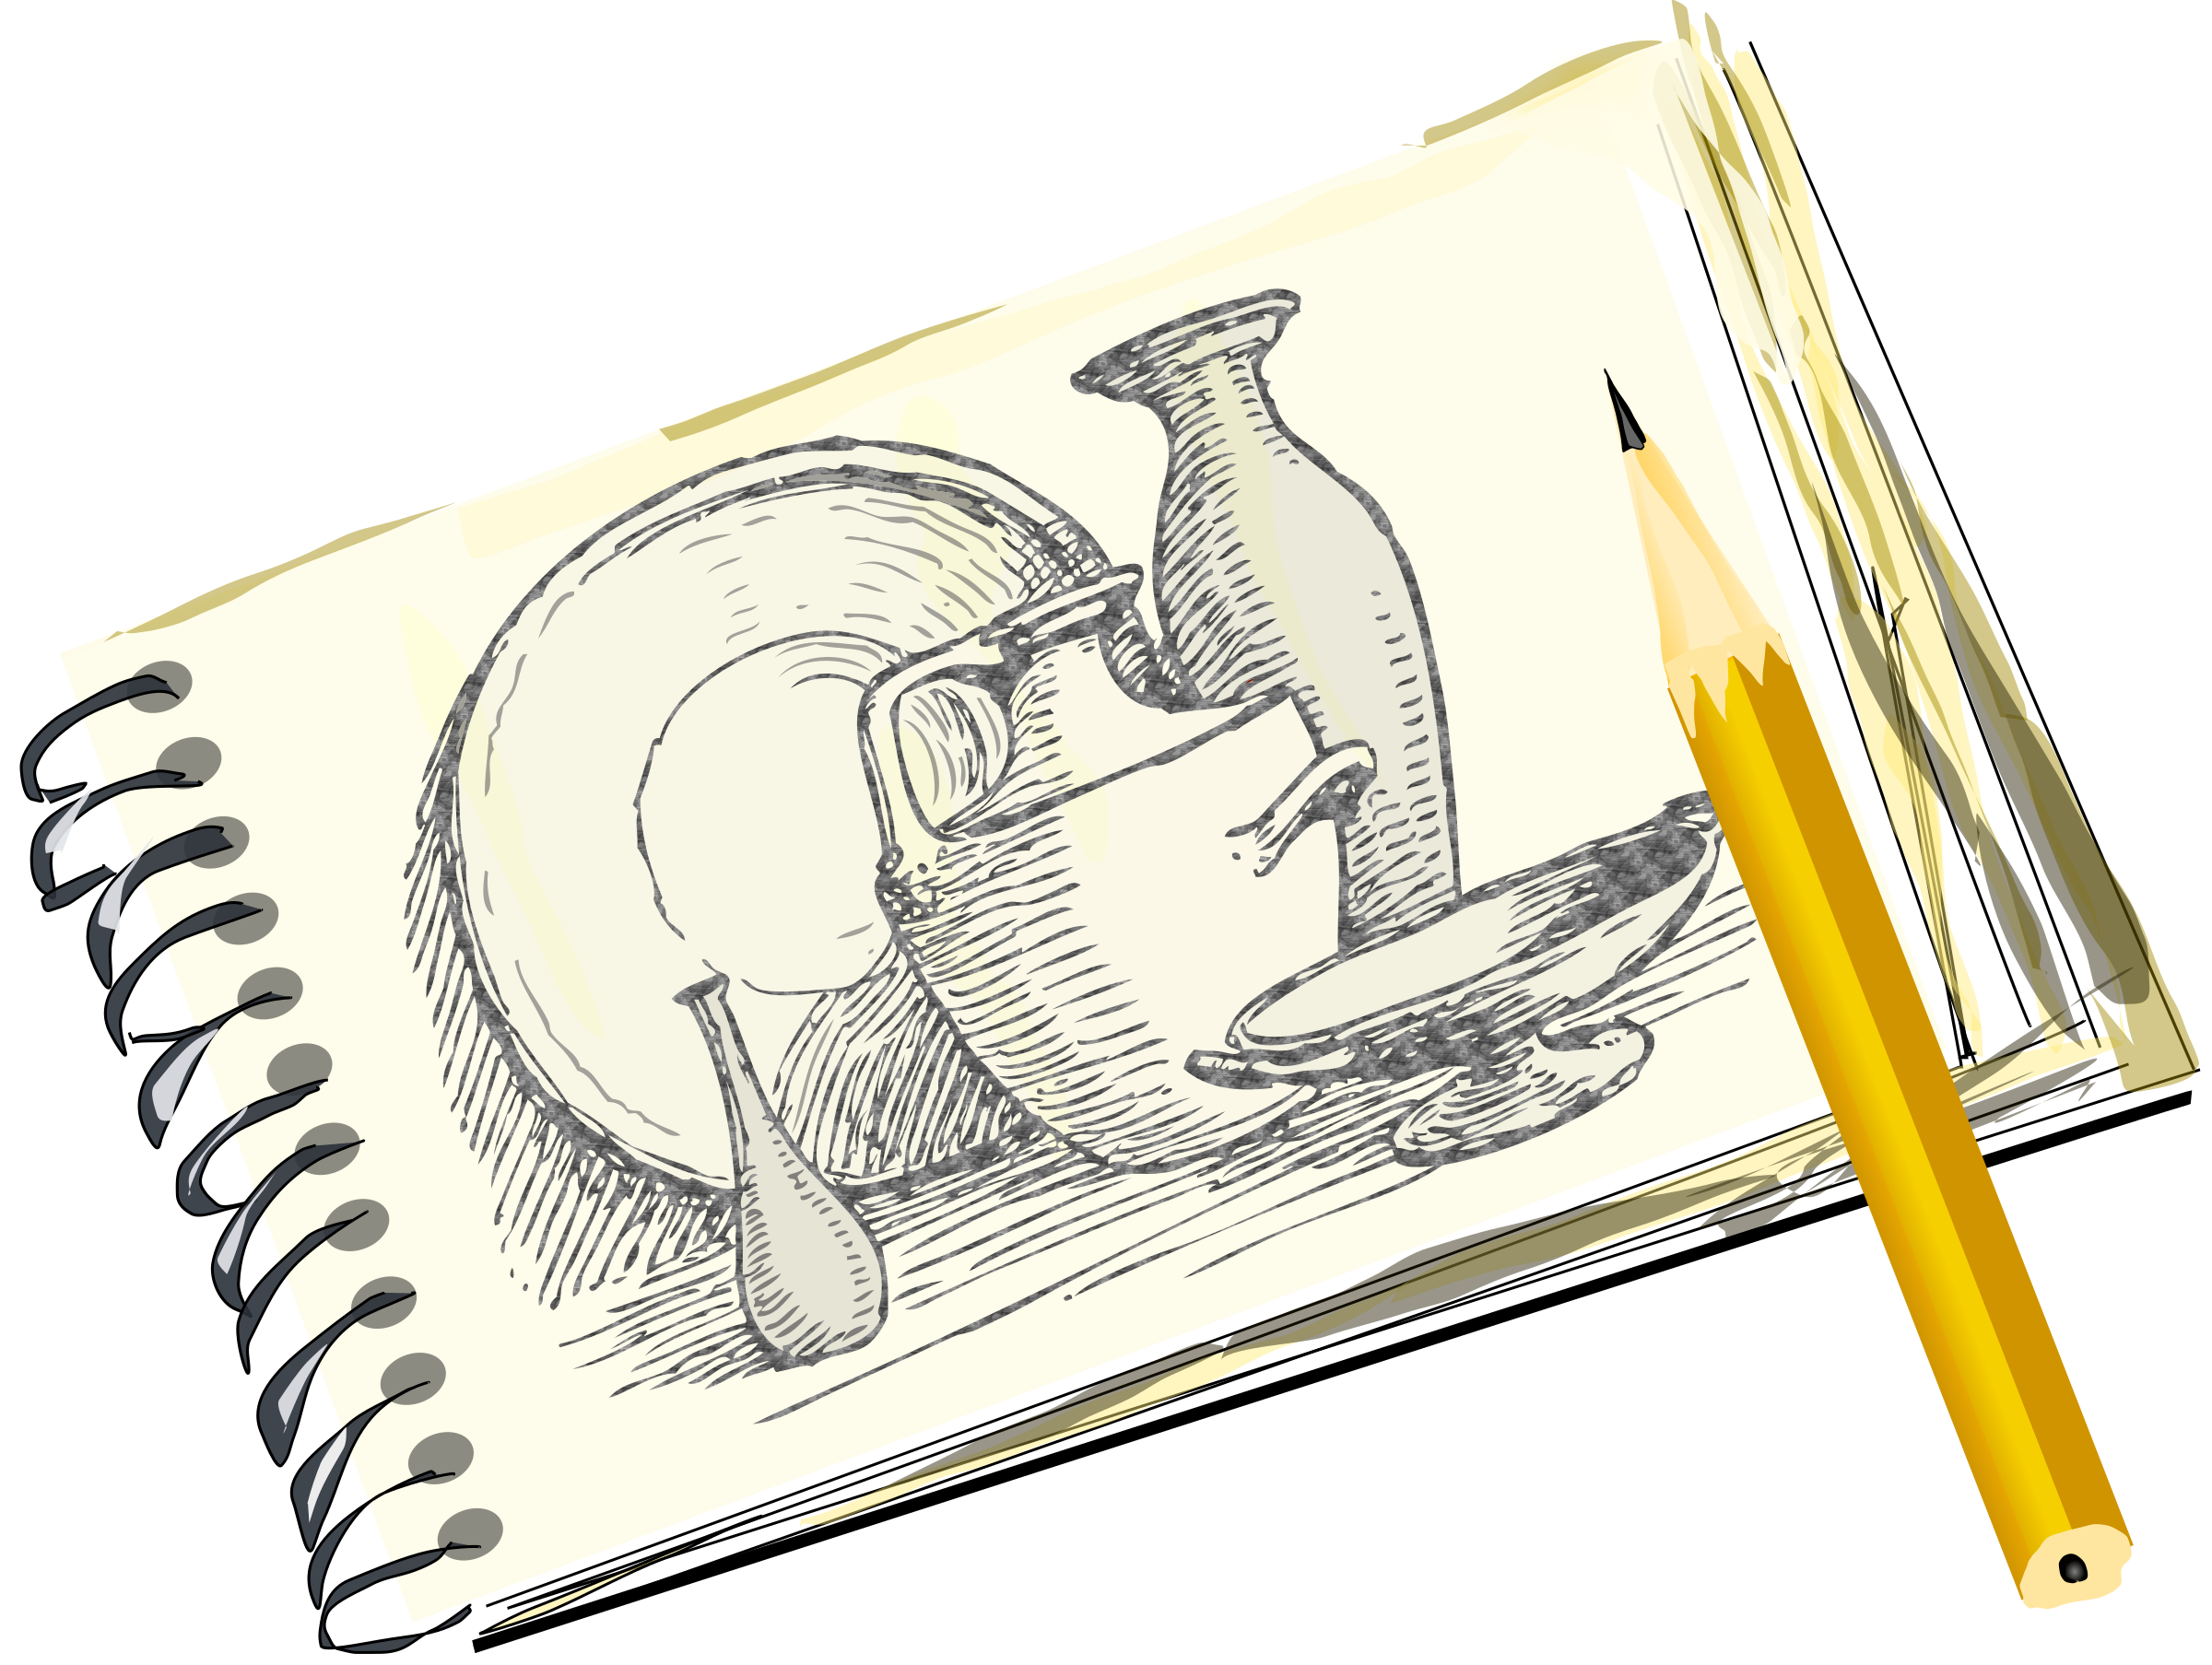 Sketchpad drawing artwork design. With still life unfilled